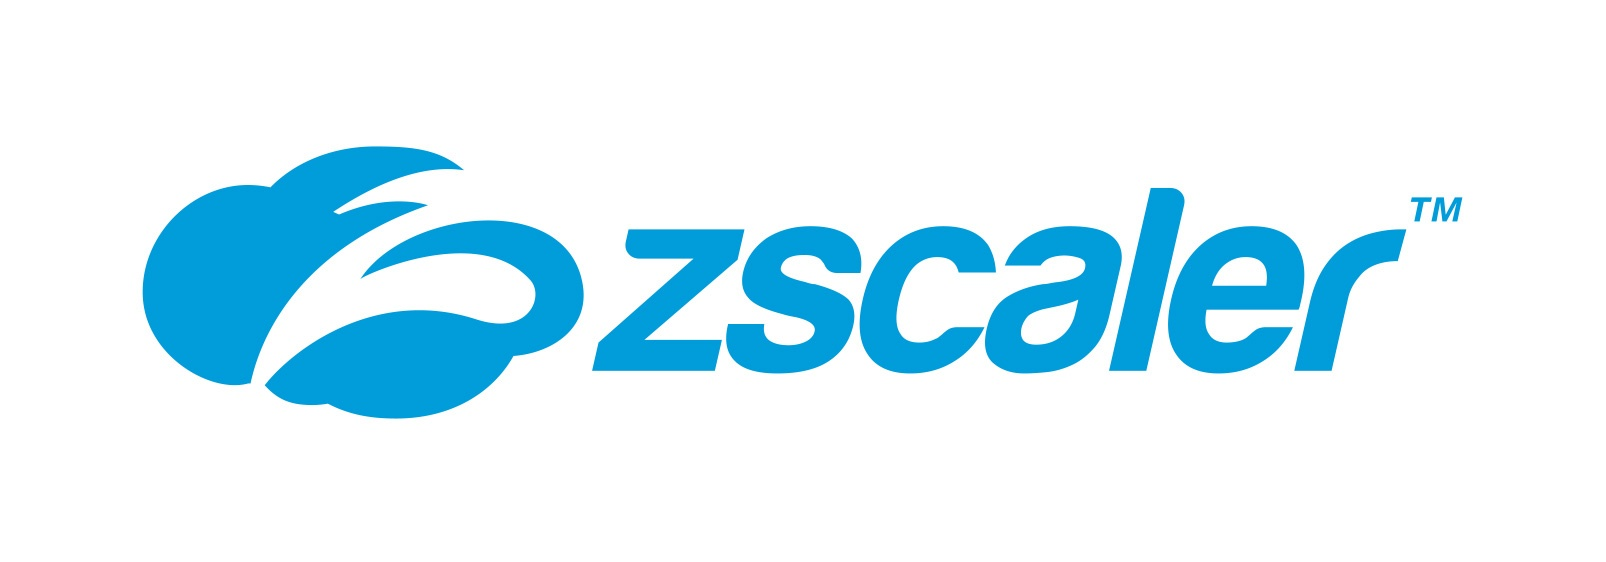 Zscaler-Logo-TM-Blue-RGB-20Dec2016.jpg